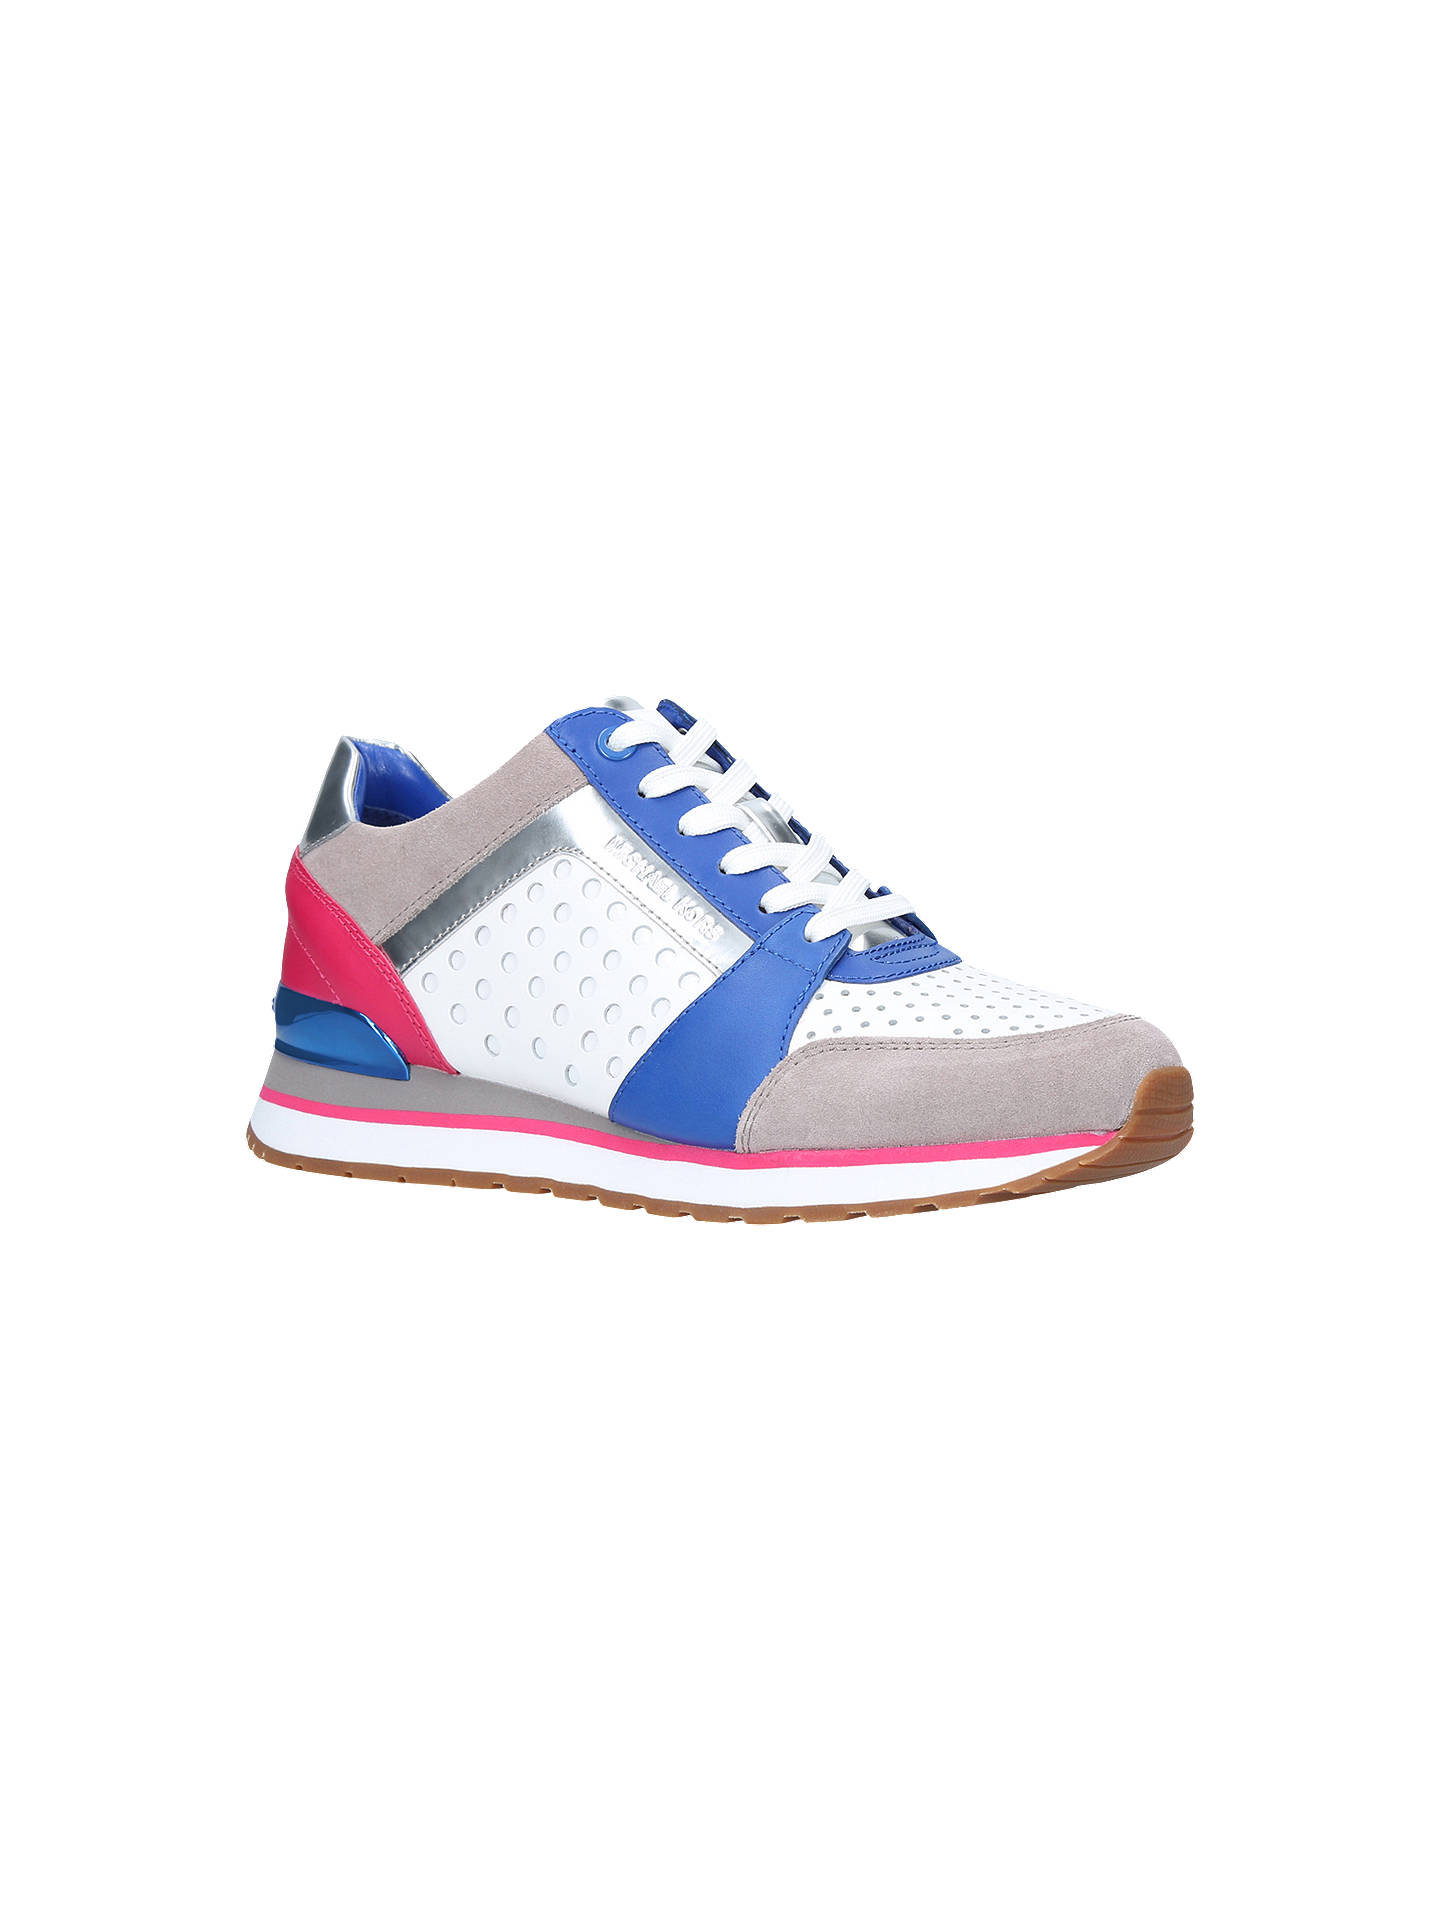 8debfe8164f MICHAEL Michael Kors Billie Perforated Lace Up Trainers, White ...